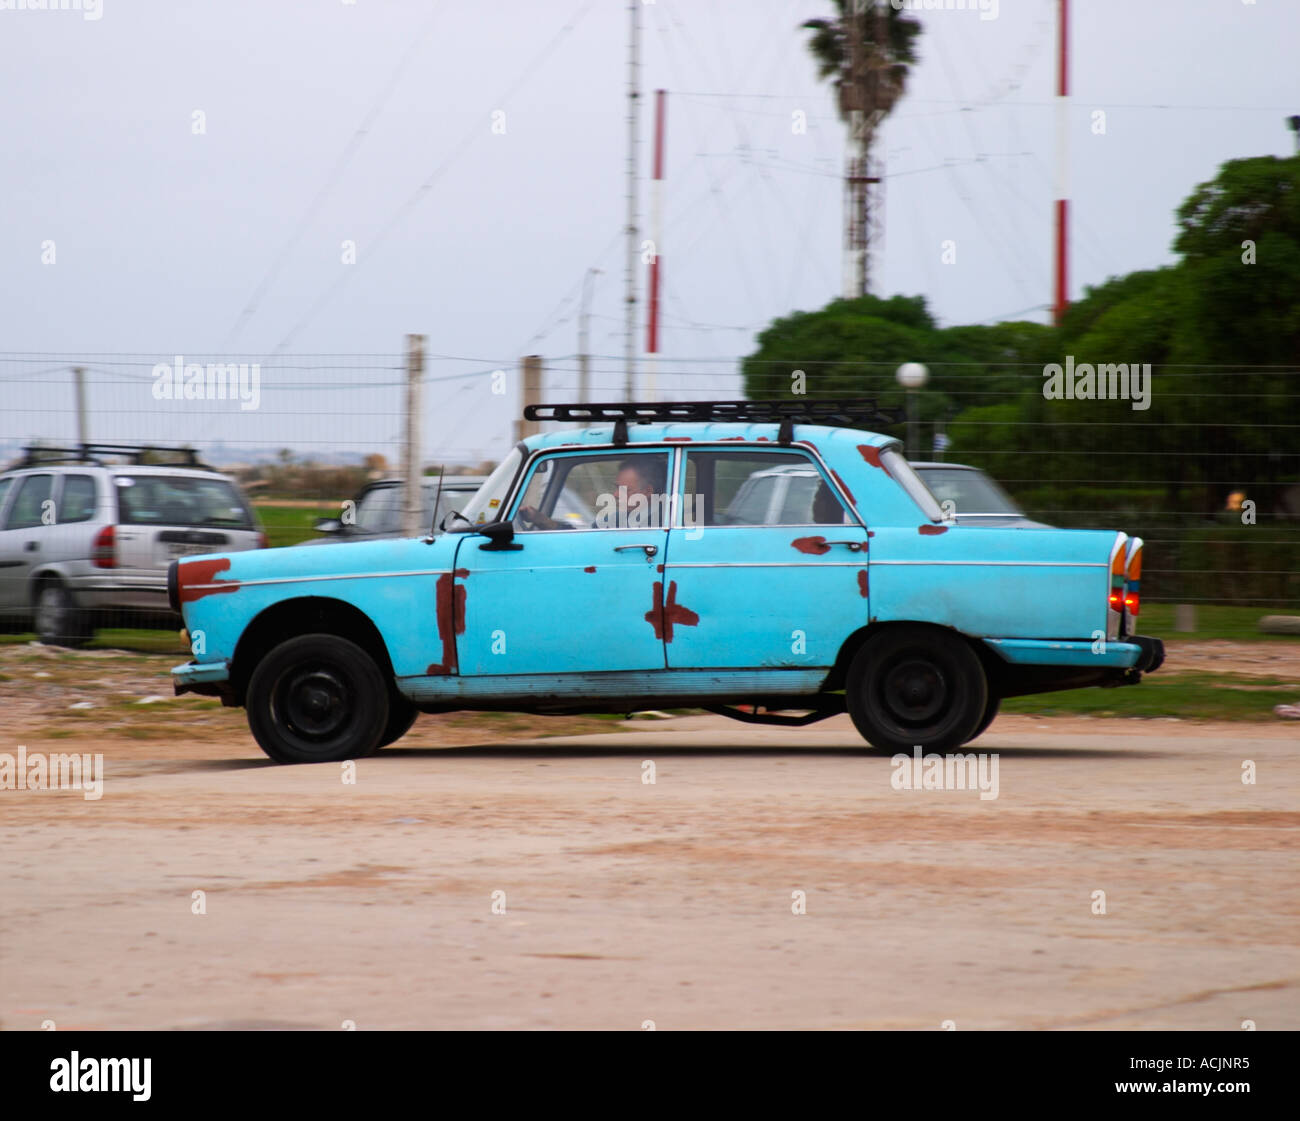 A rusty old 1950s car in blue on a parking lot with a man driving ...